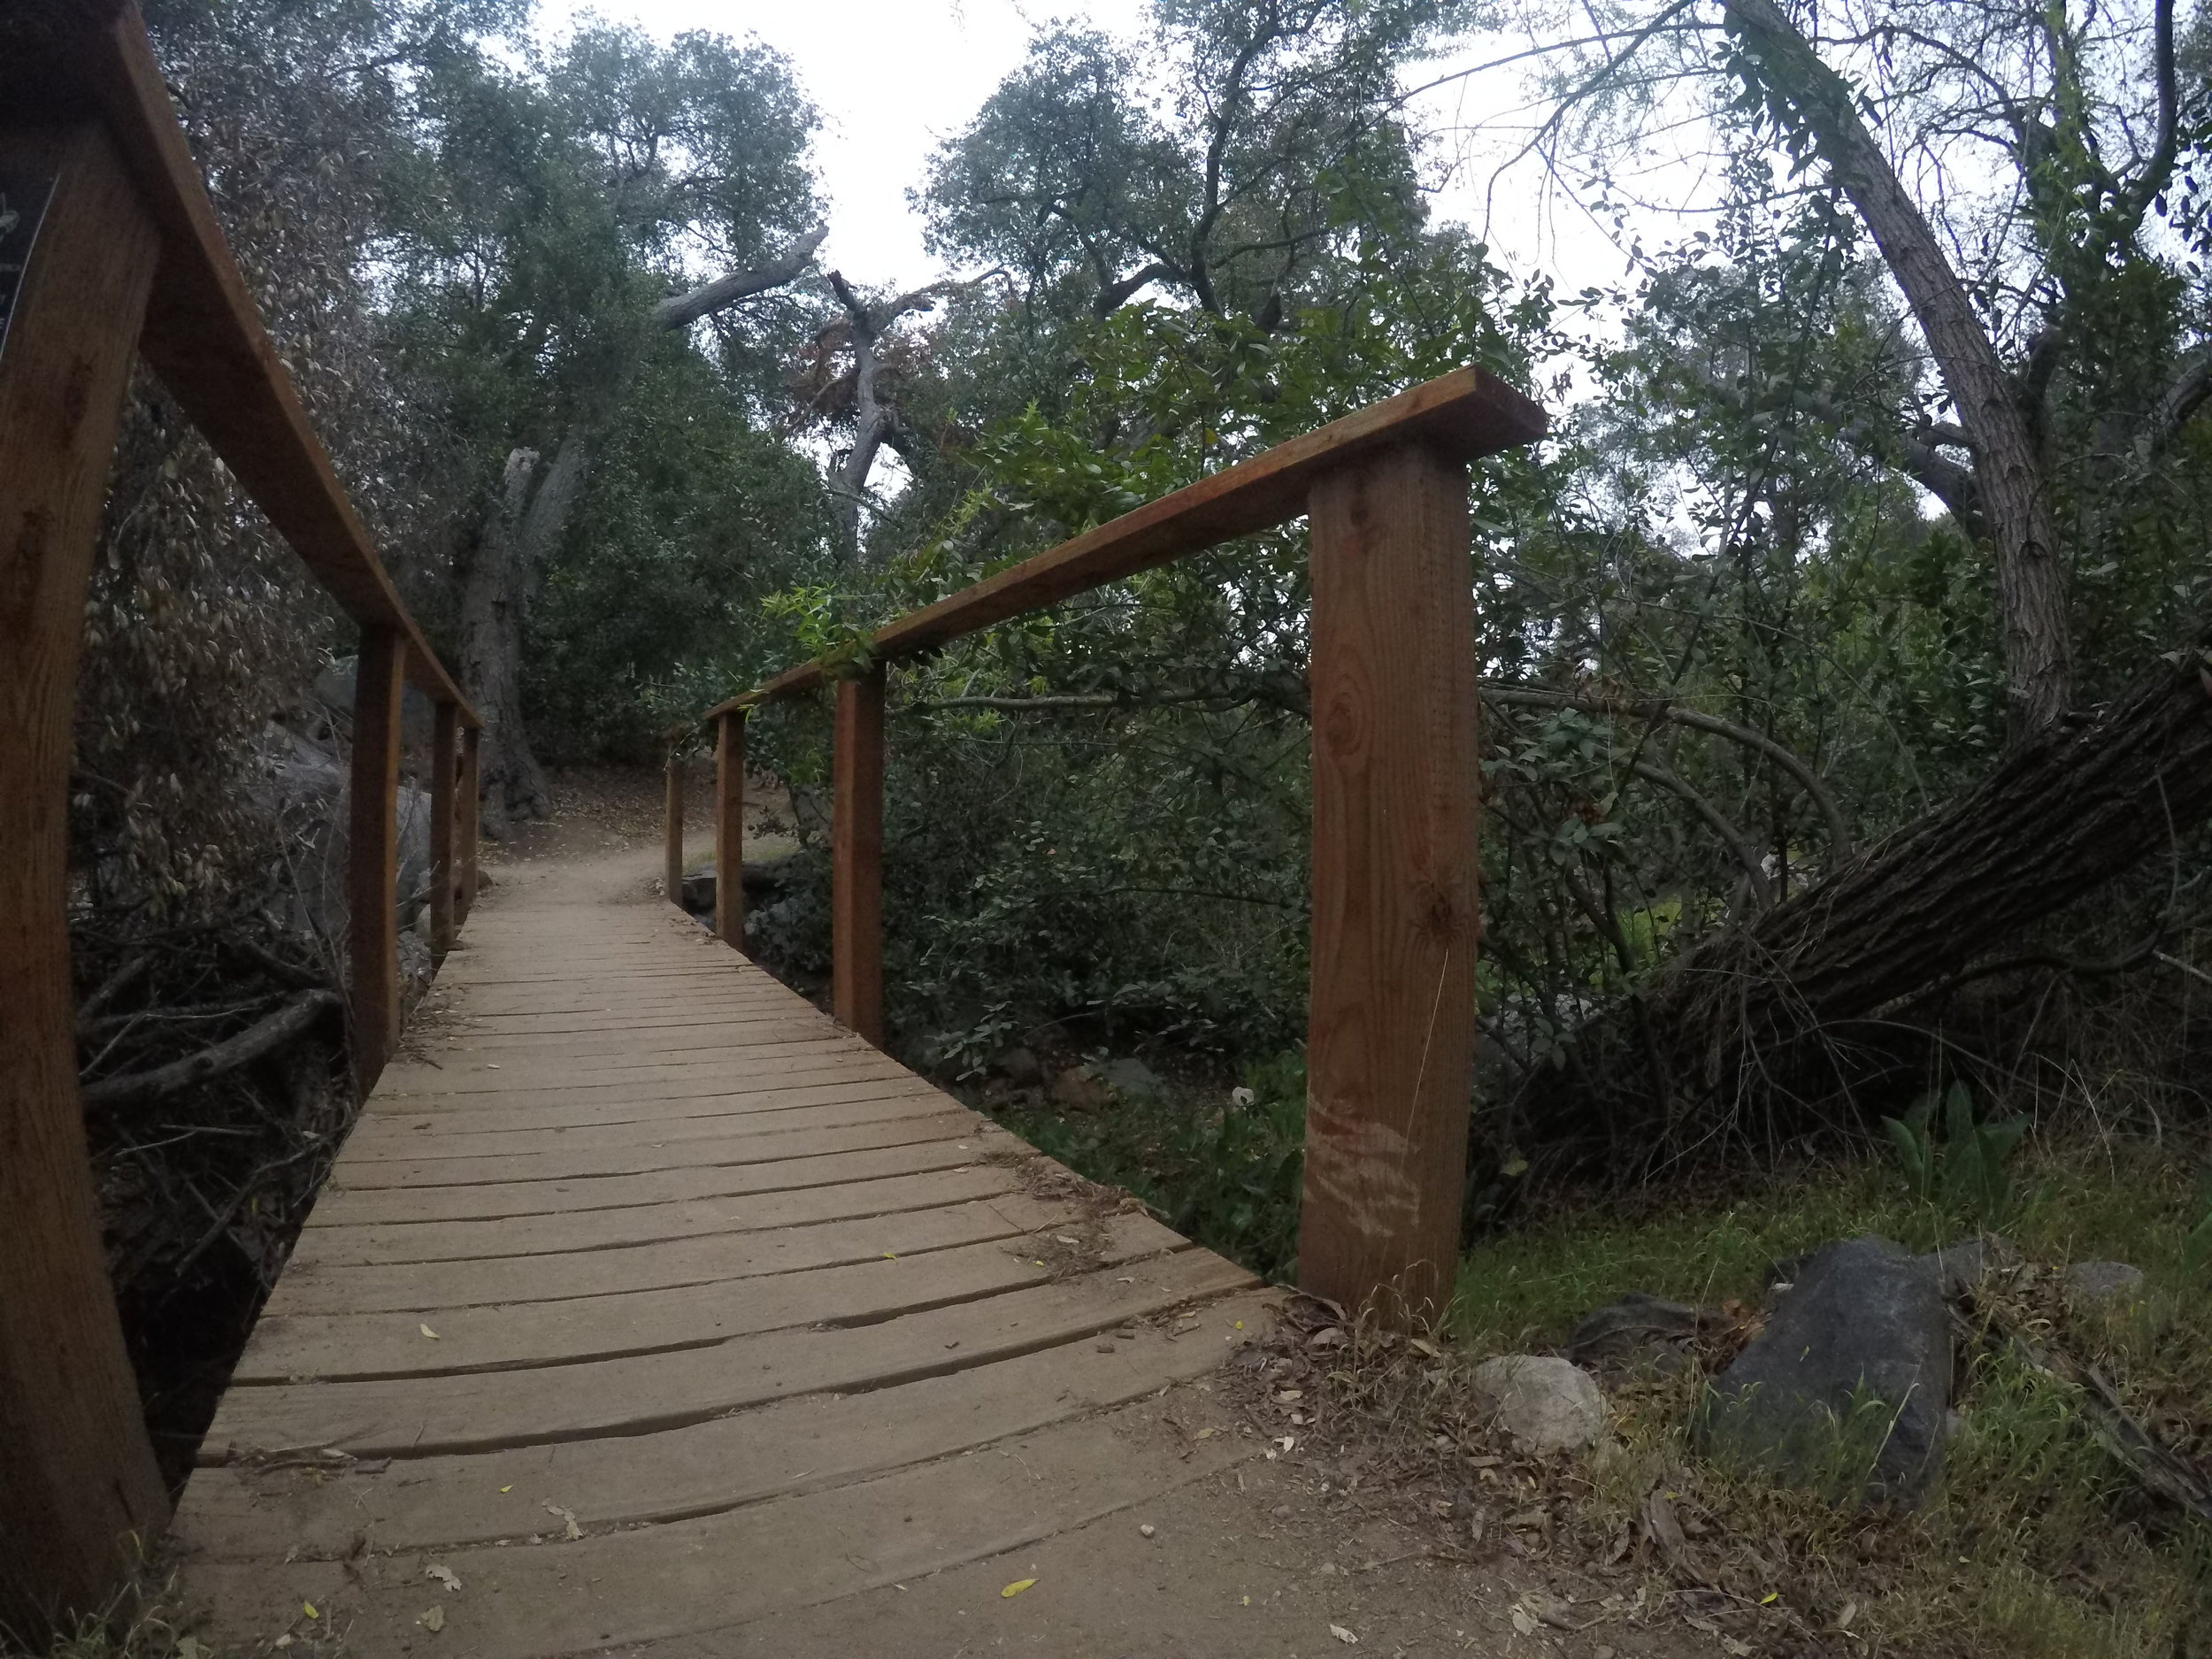 After heading up for a short distance, the route descends into Suycott Valley, and Suycott Wash, which is a peaceful,green area of the park.